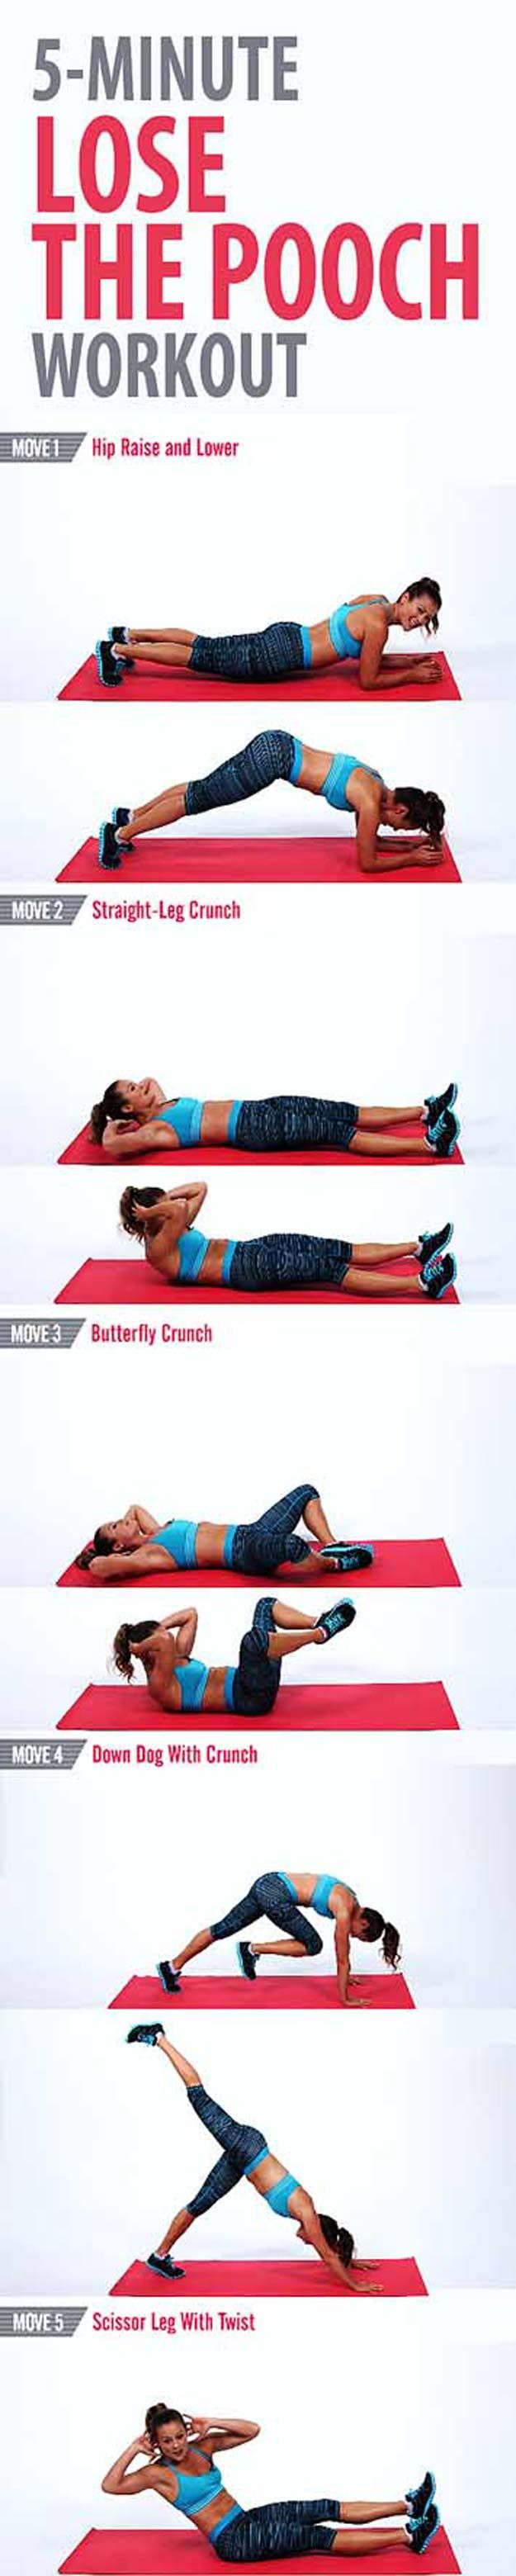 Best Exercises for Abs - 5-Minute Lose the Pooch Workout - Best Ab Exercises And Ab Workouts For A Flat Stomach, Increased Health Fitness, And Weightless. Ab Exercises For Women, For Men, And For Kids. Great With A Diet To Help With Losing Weight From The